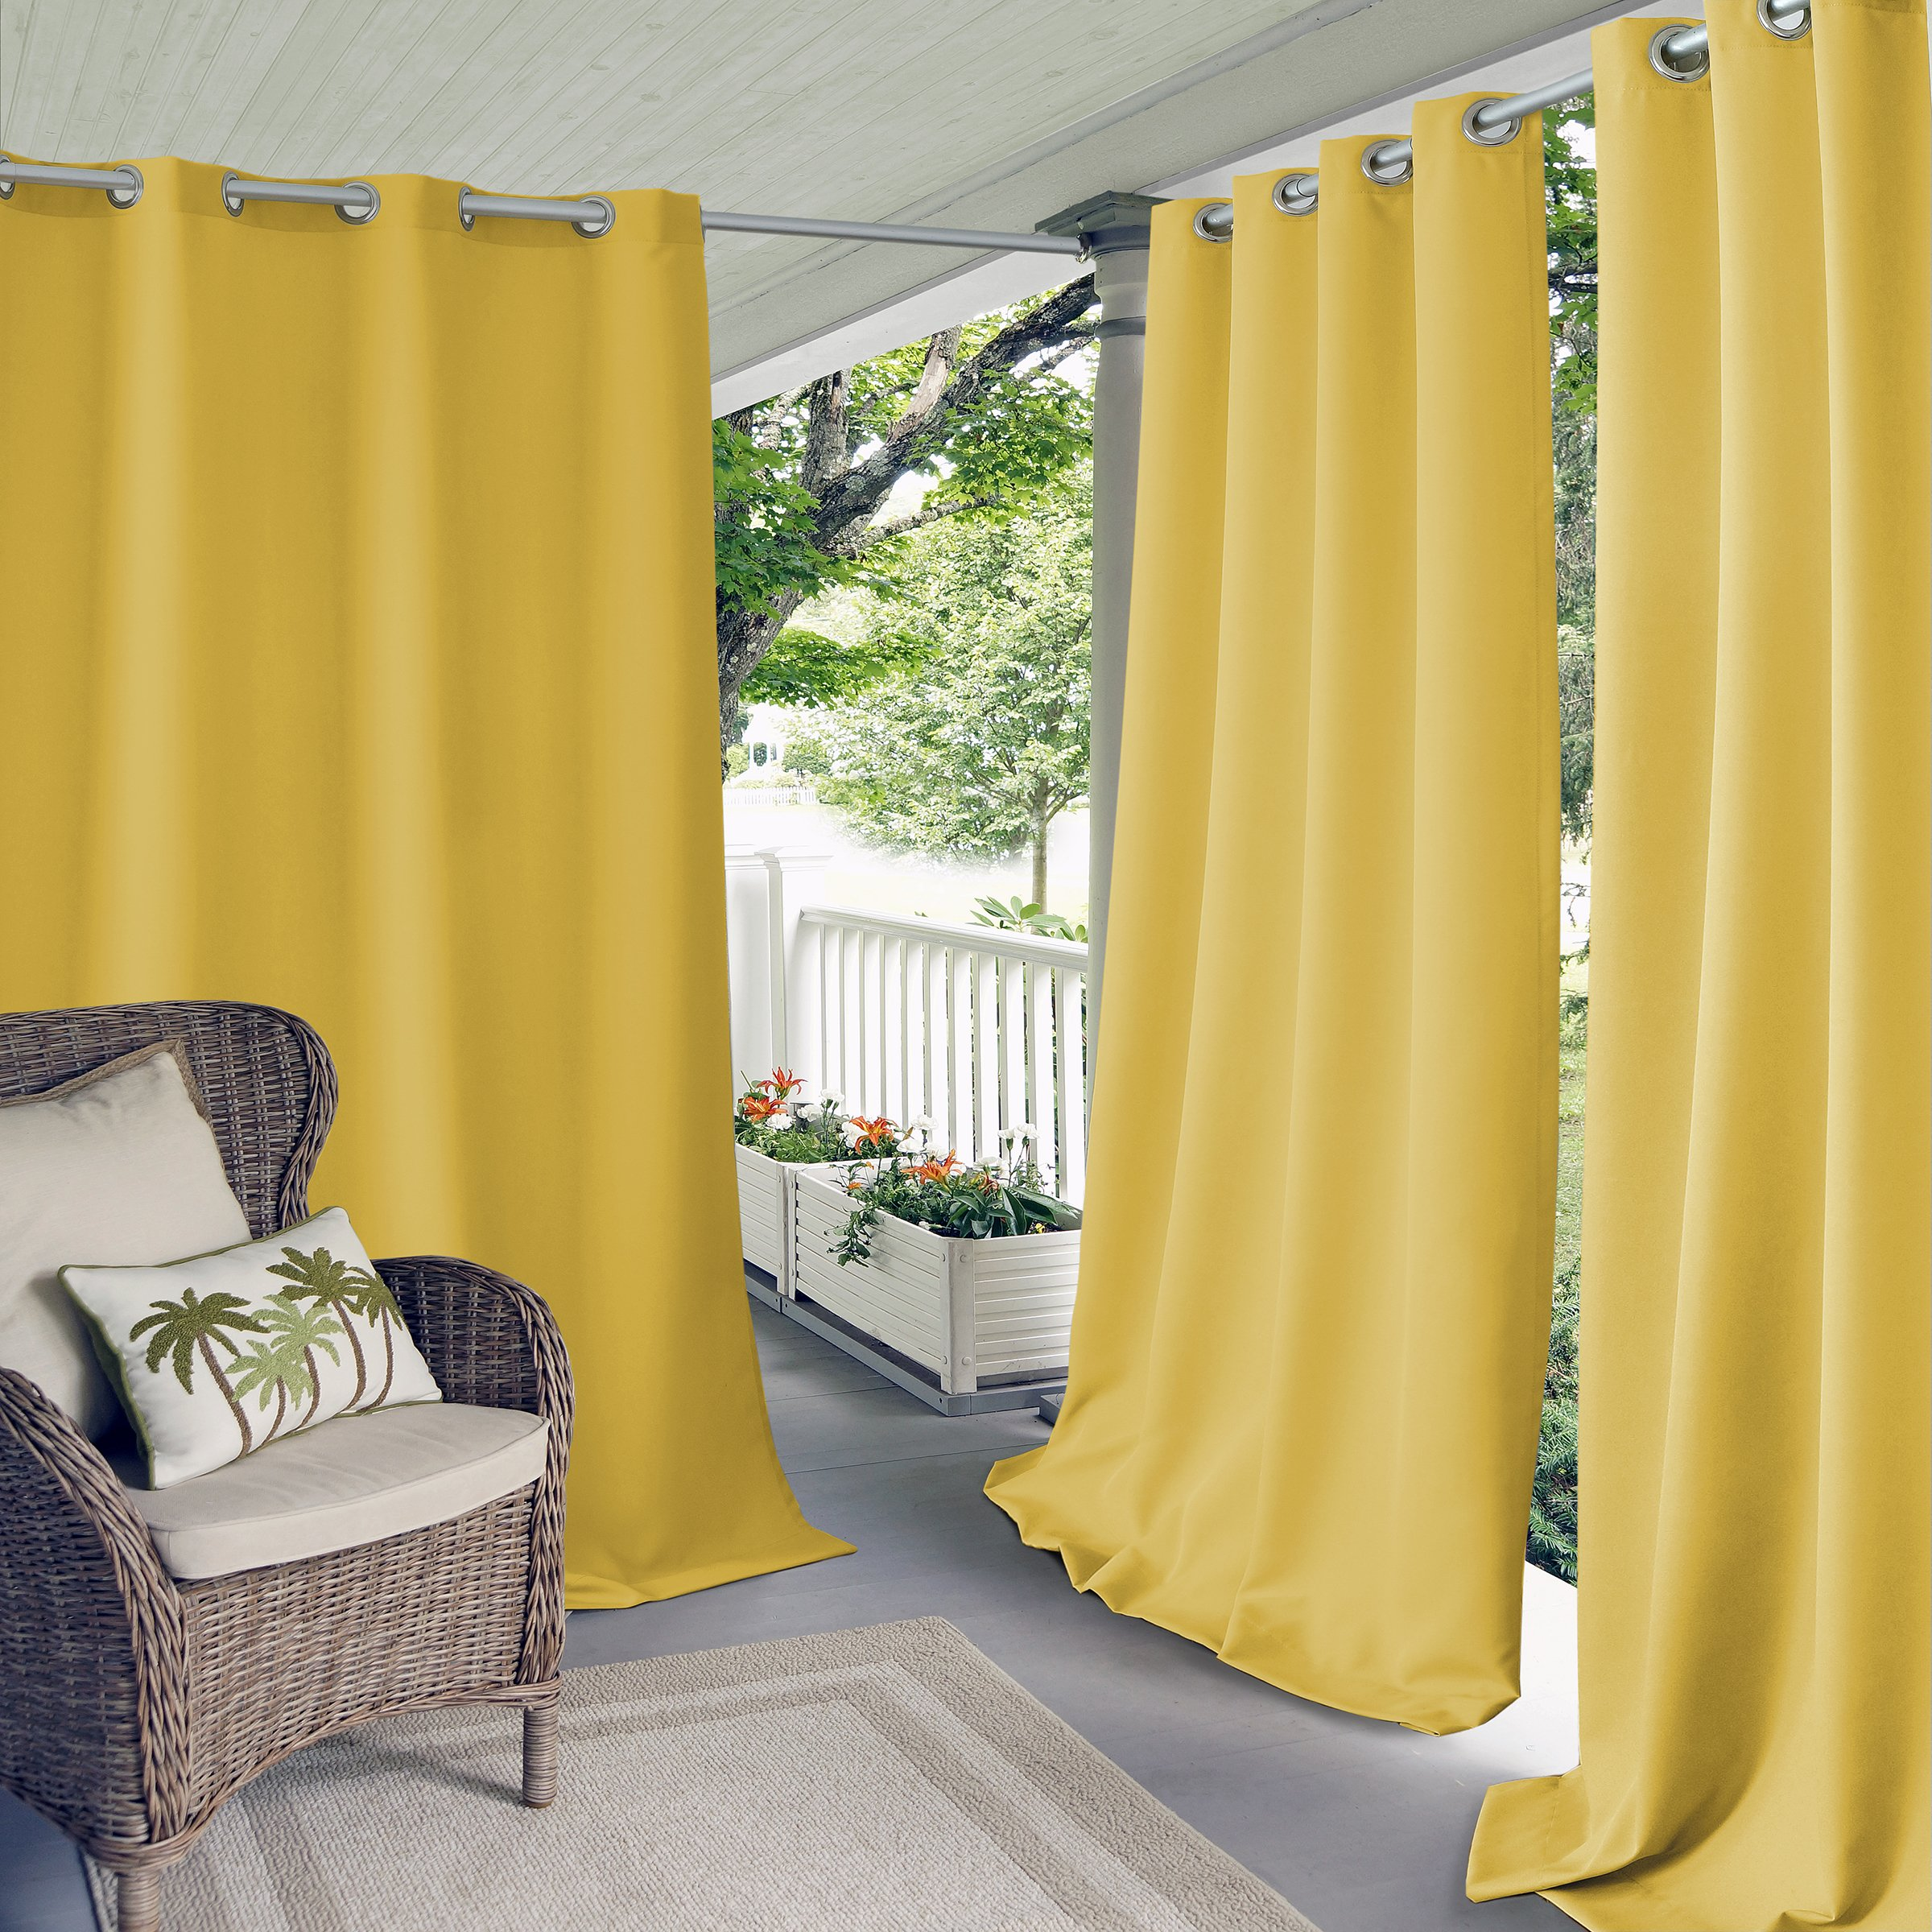 Elrene Home Fashions Connor Indoor/Outdoor Solid Grommet Panel Window Curtain 52'' x 95'' (1), Yellow